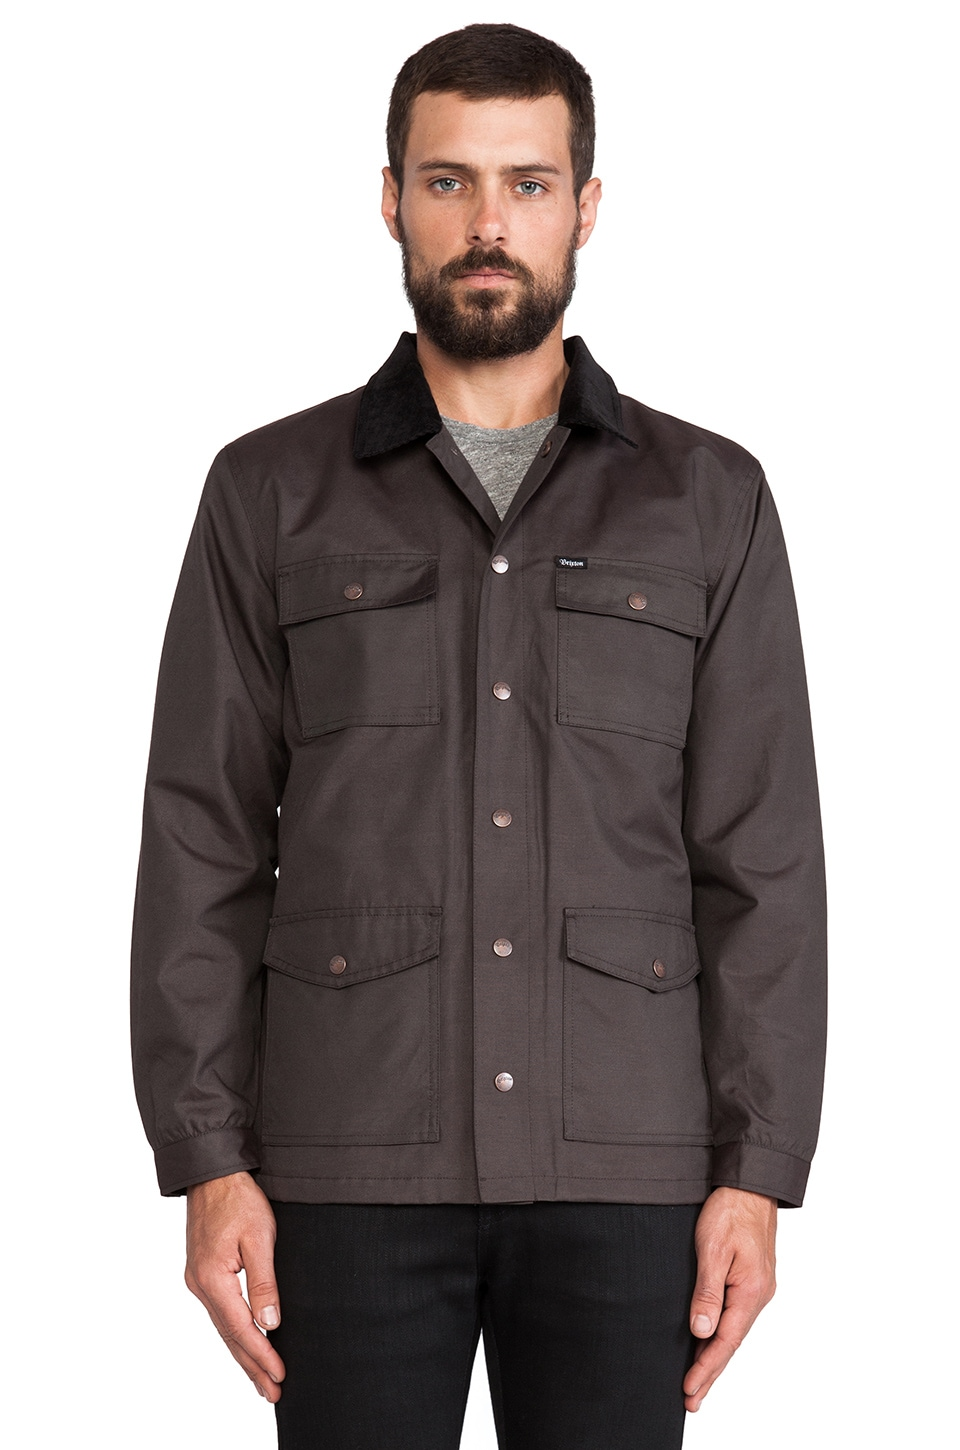 Brixton Troubadour II Jacket in Washed Black